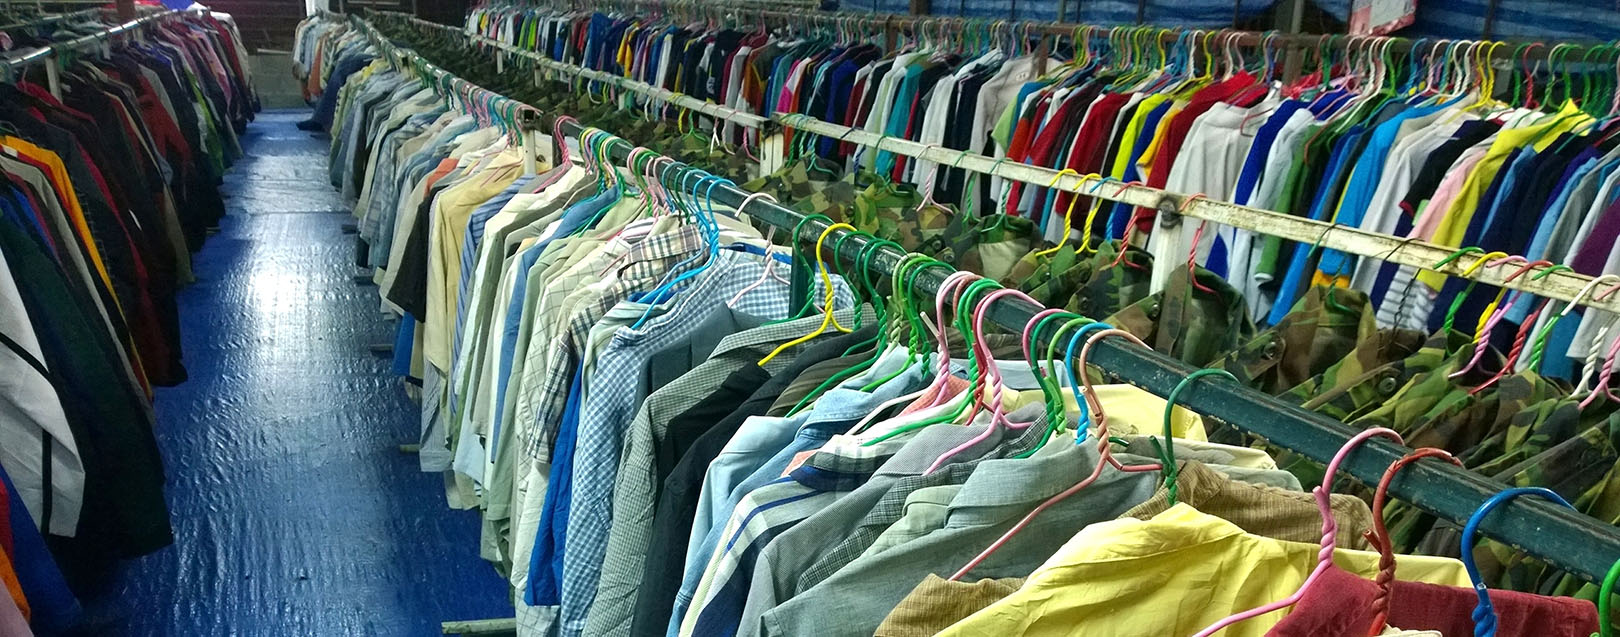 Govt extends export entitlement quota on garments, yarn for 1 yr